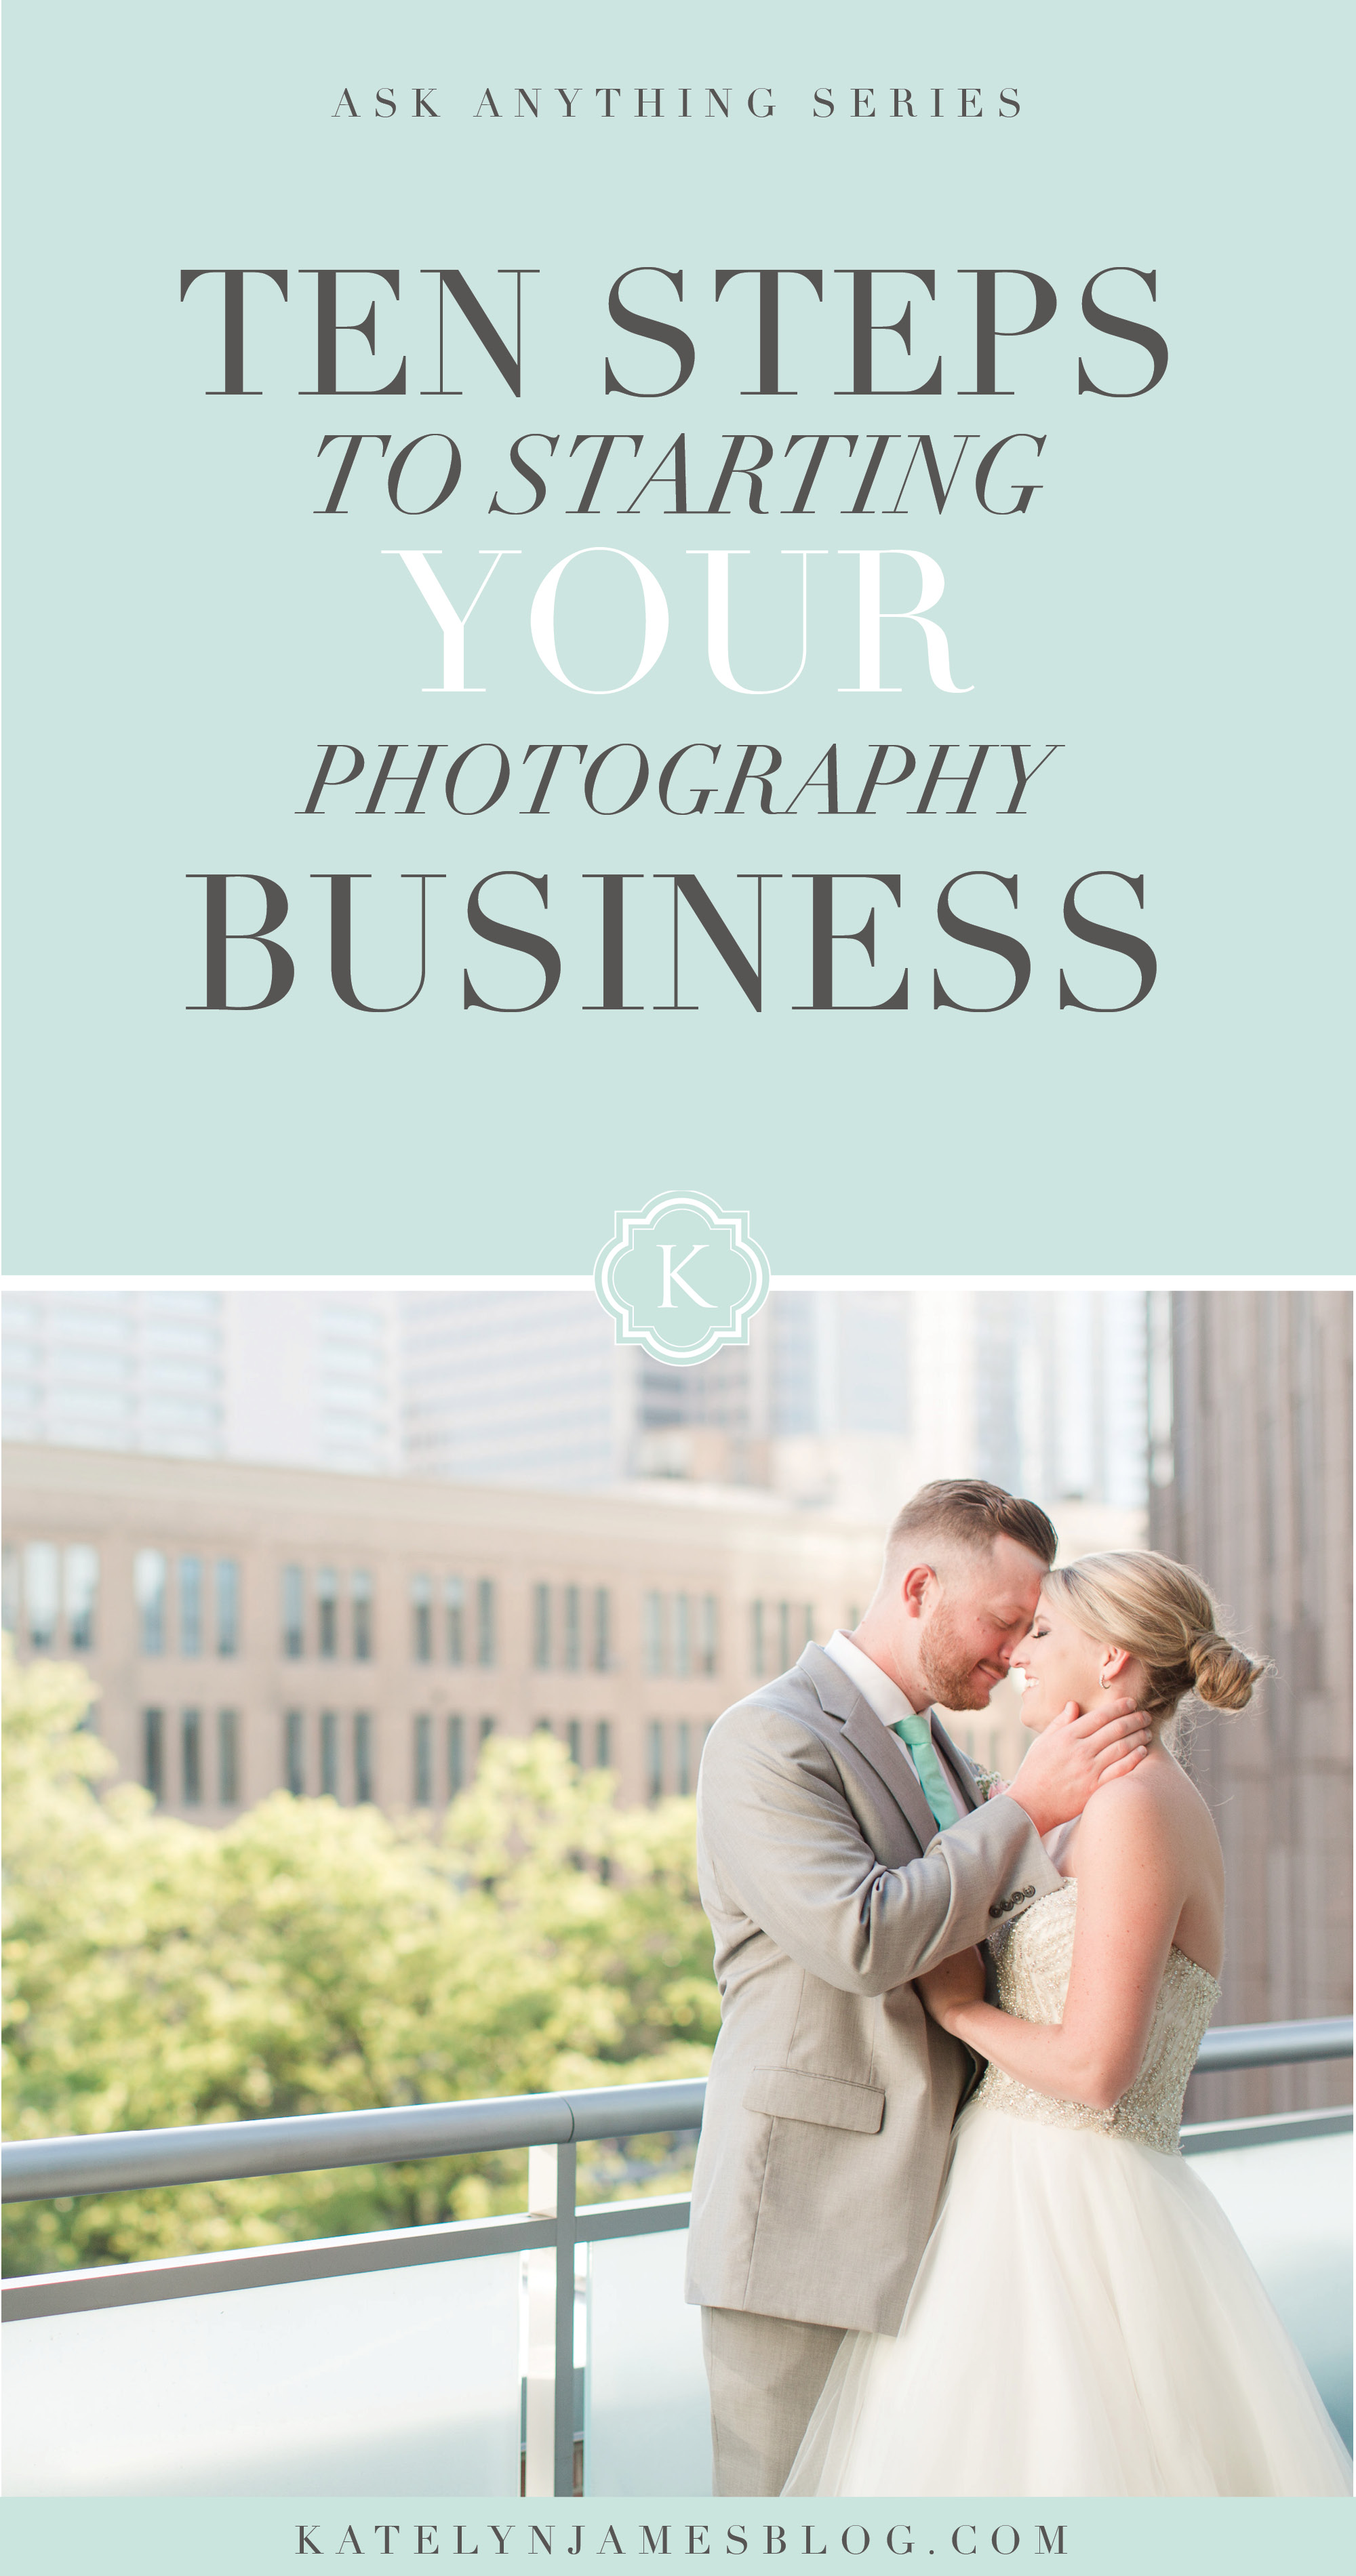 10 Steps for Starting Your Photography Business by Katelyn James Photography